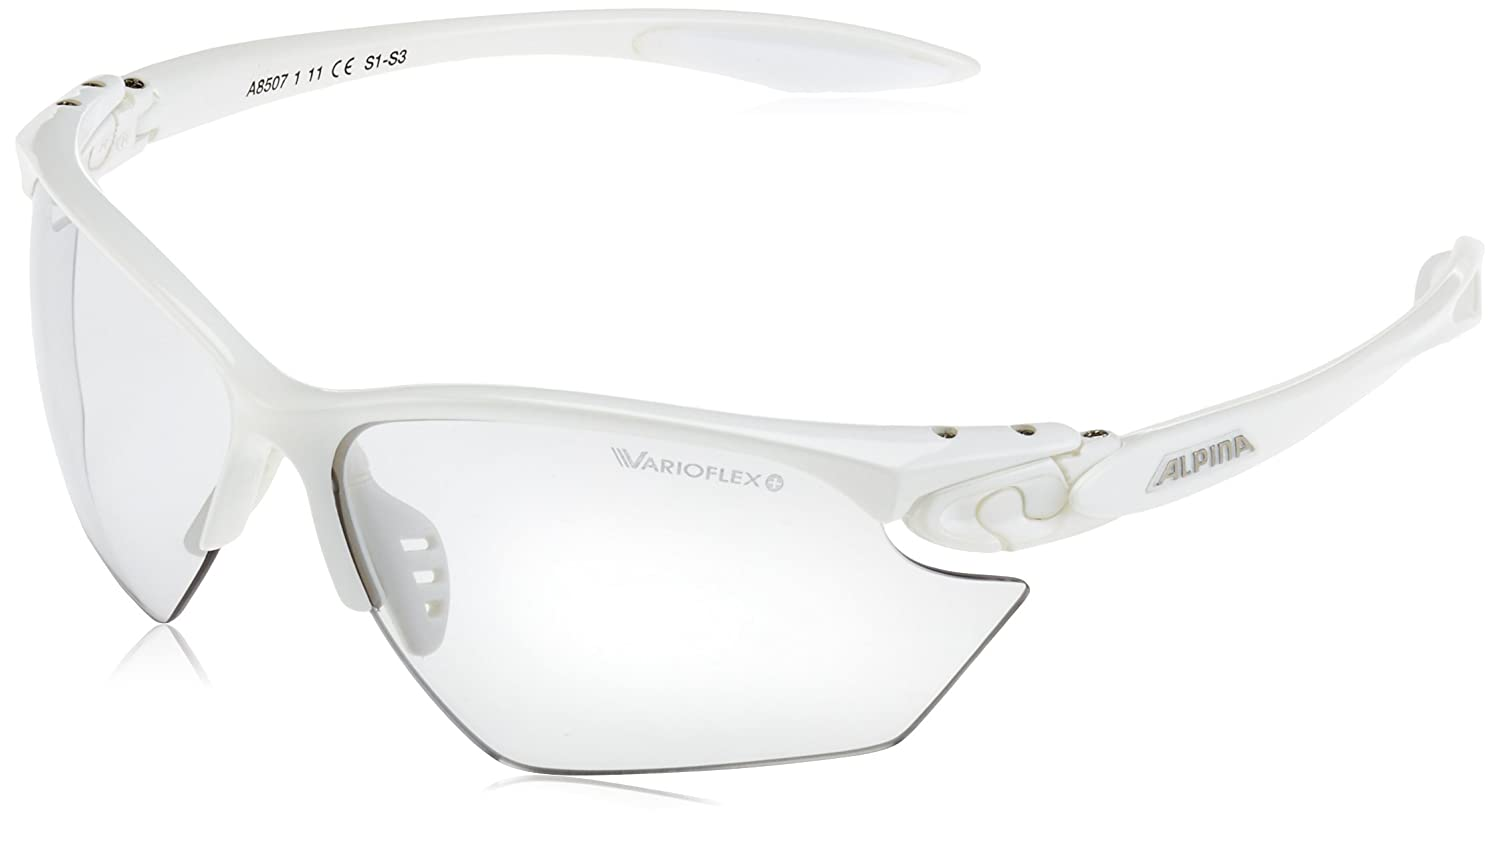 ALPINA Sonnenbrille Performance Twist Four S Vl+ Outdoorsport-Brille